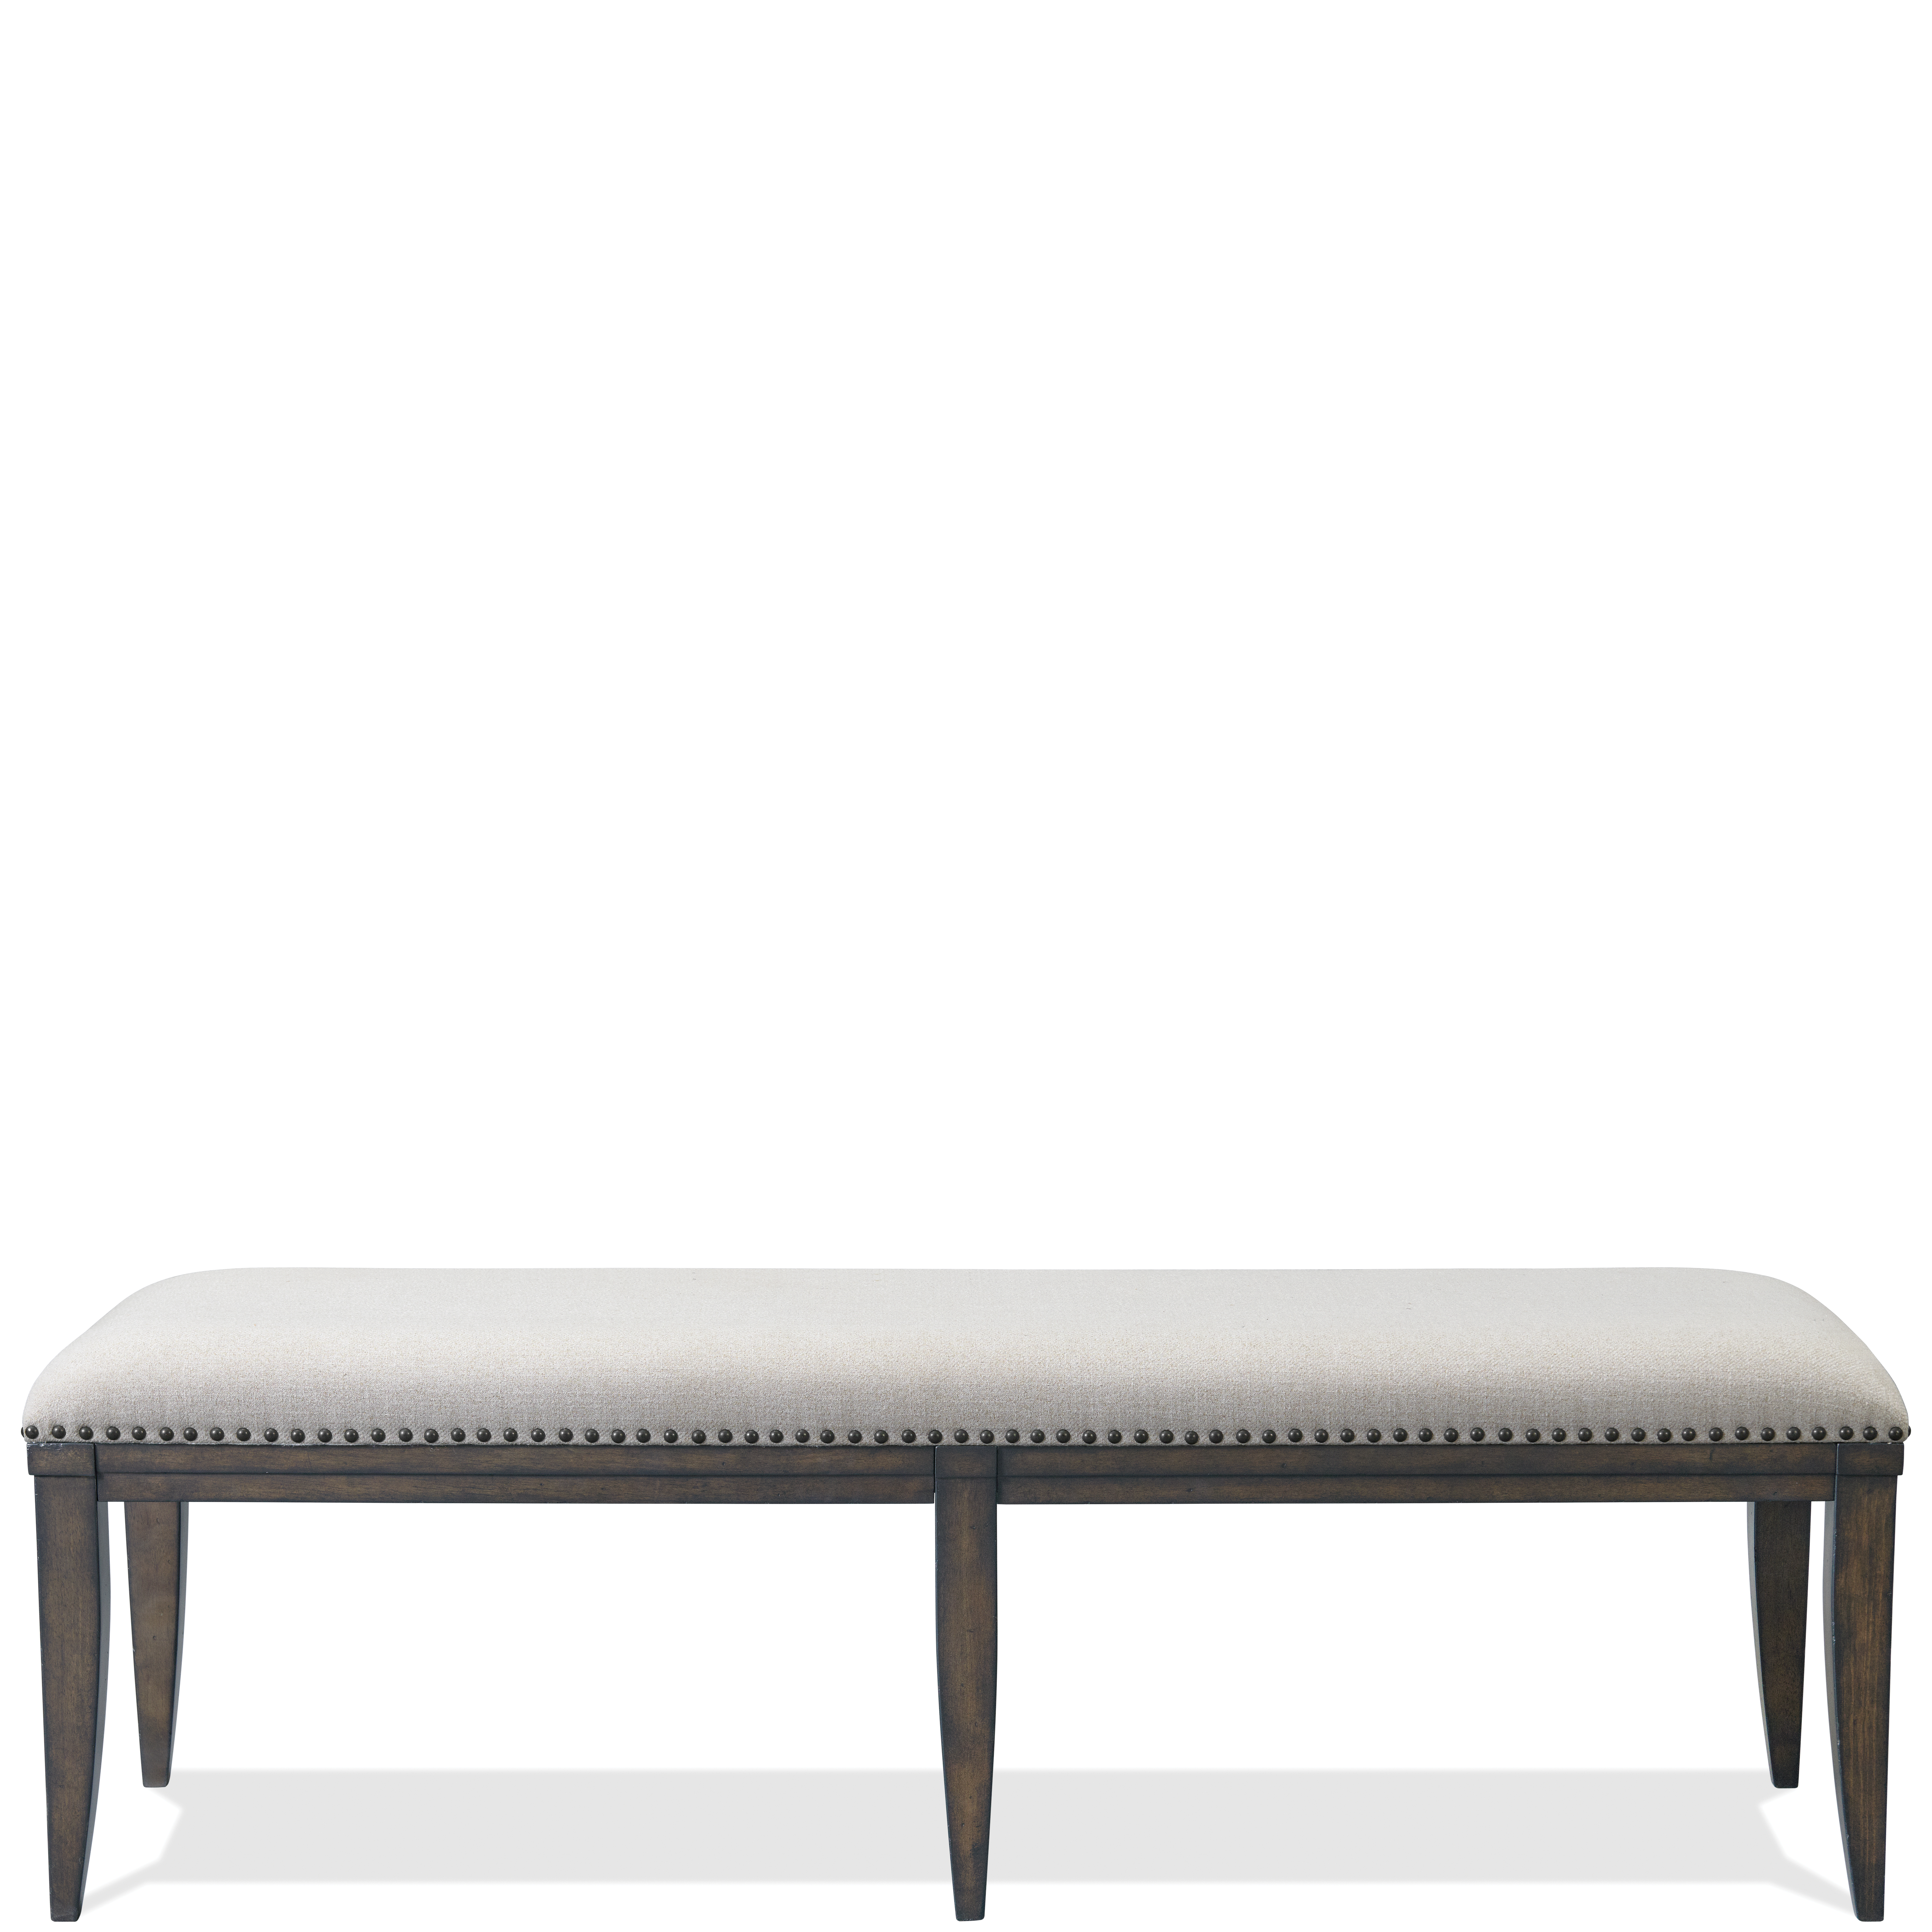 Forsyth Dining Bench by Riverside Furniture at Dream Home Interiors